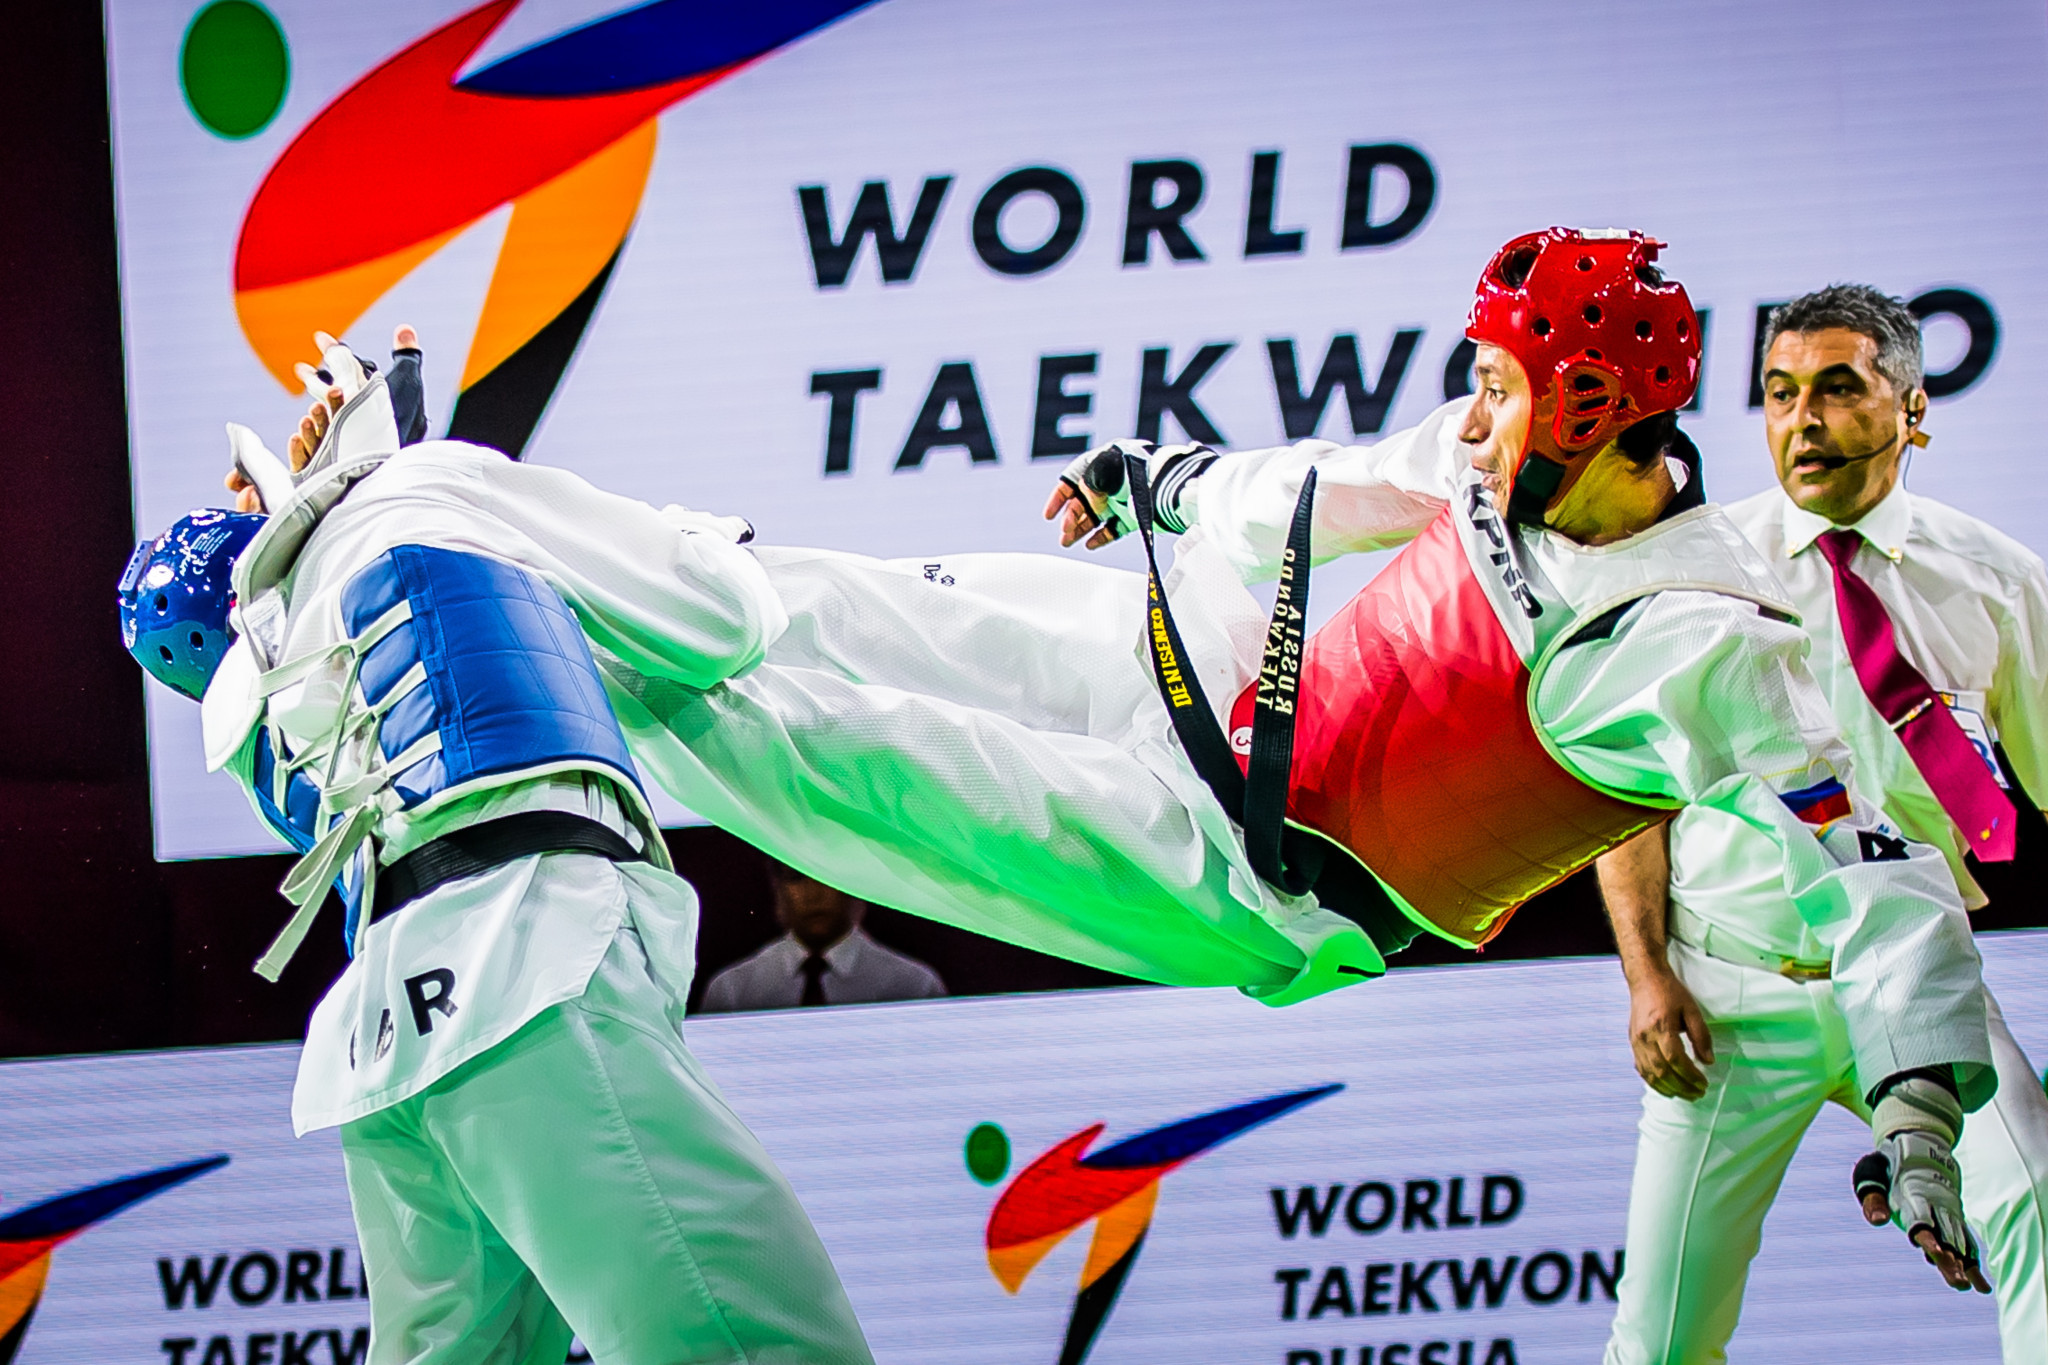 Russia's Alexey Denisenko delighted the home crowd by claiming the men's under-68 kilograms gold medal on the first day of action at the World Taekwondo Grand Prix series leg in Moscow ©World Taekwondo